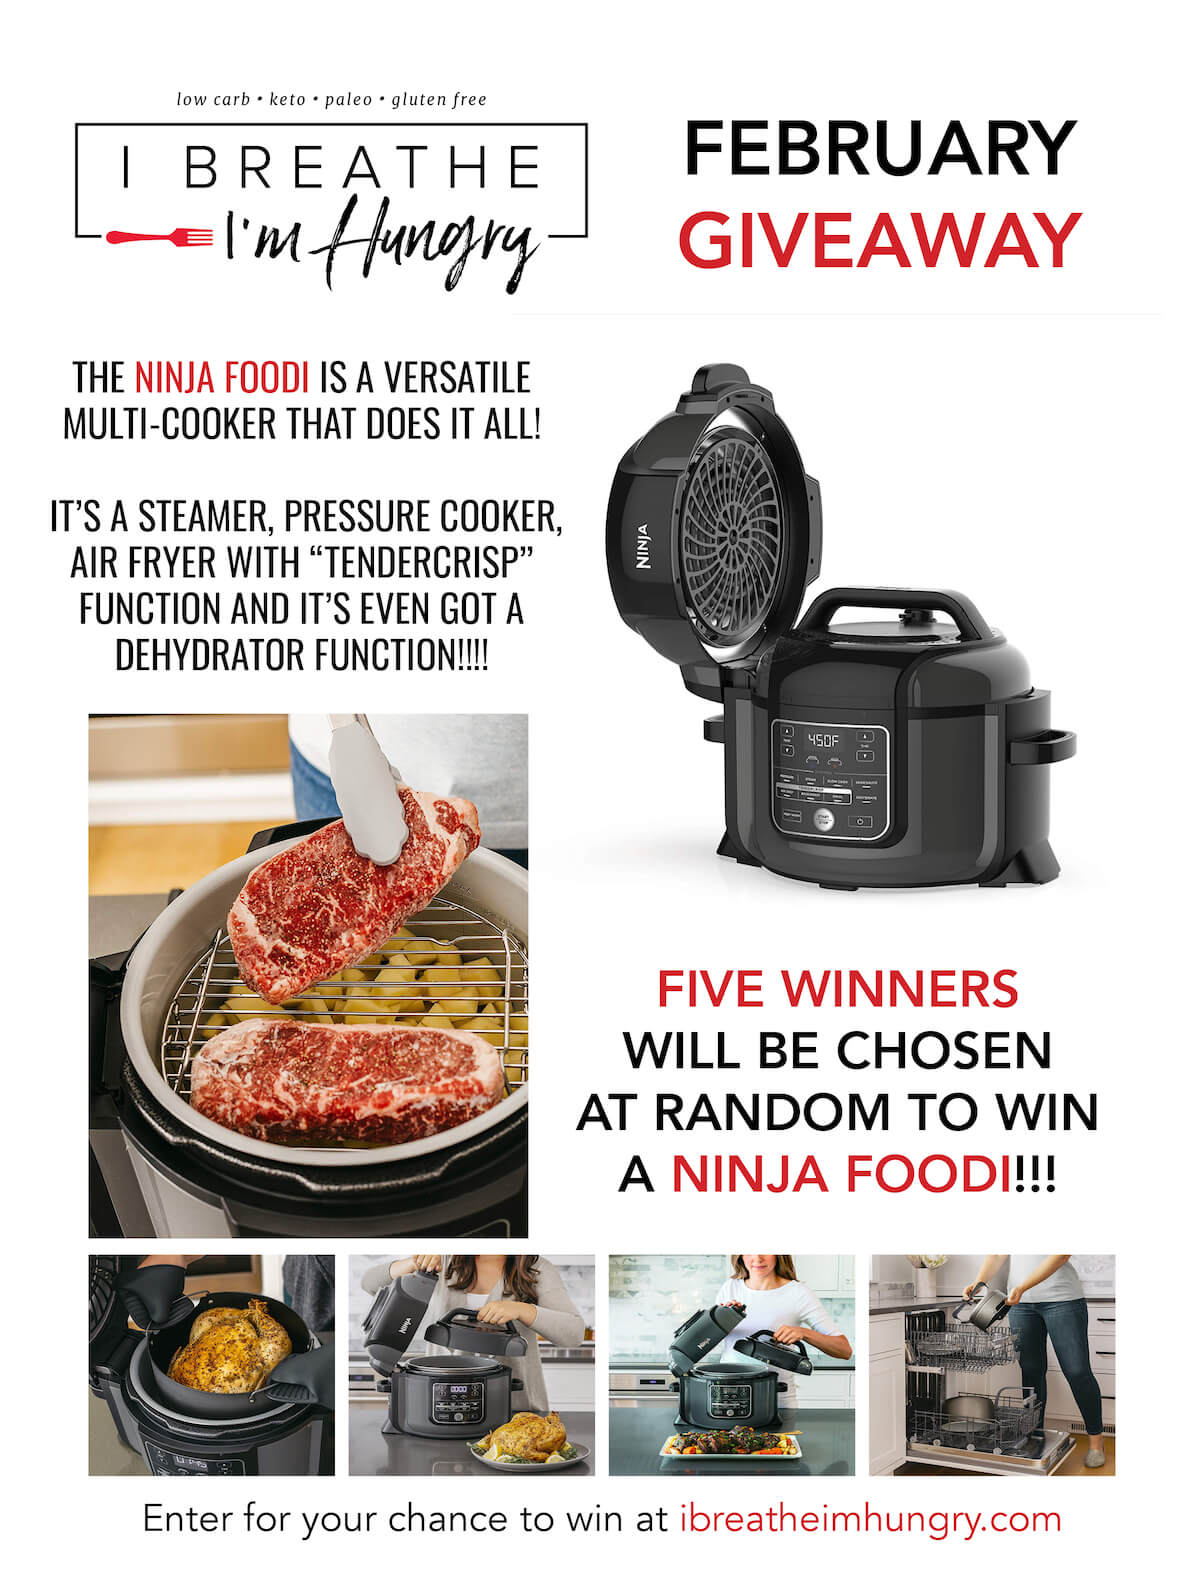 This month IBIH is giving away FIVE Ninja Foodi Multi-cookers - an amazing appliance that boasts a steamer, pressure cooker, air fryer, and even dehydrator function! Homemade keto beef jerky anyone??? Enter daily to increase your chances of winning!!